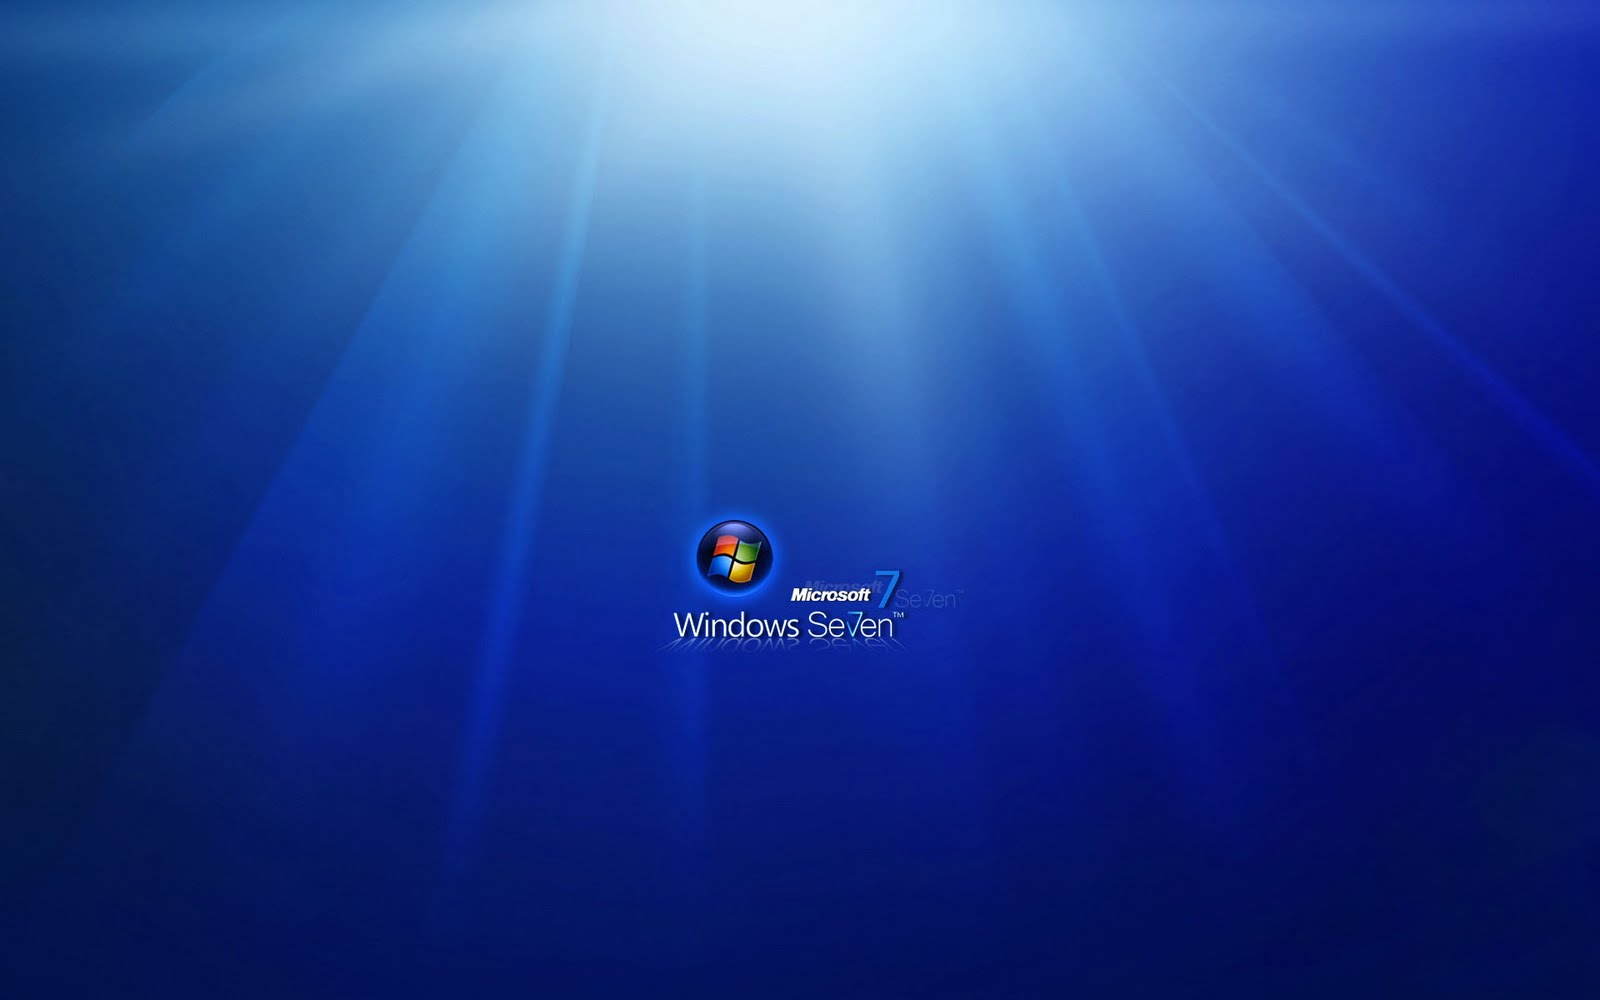 Free wallpapers windows 7 wallpapers - Windows 7 love wallpapers ...